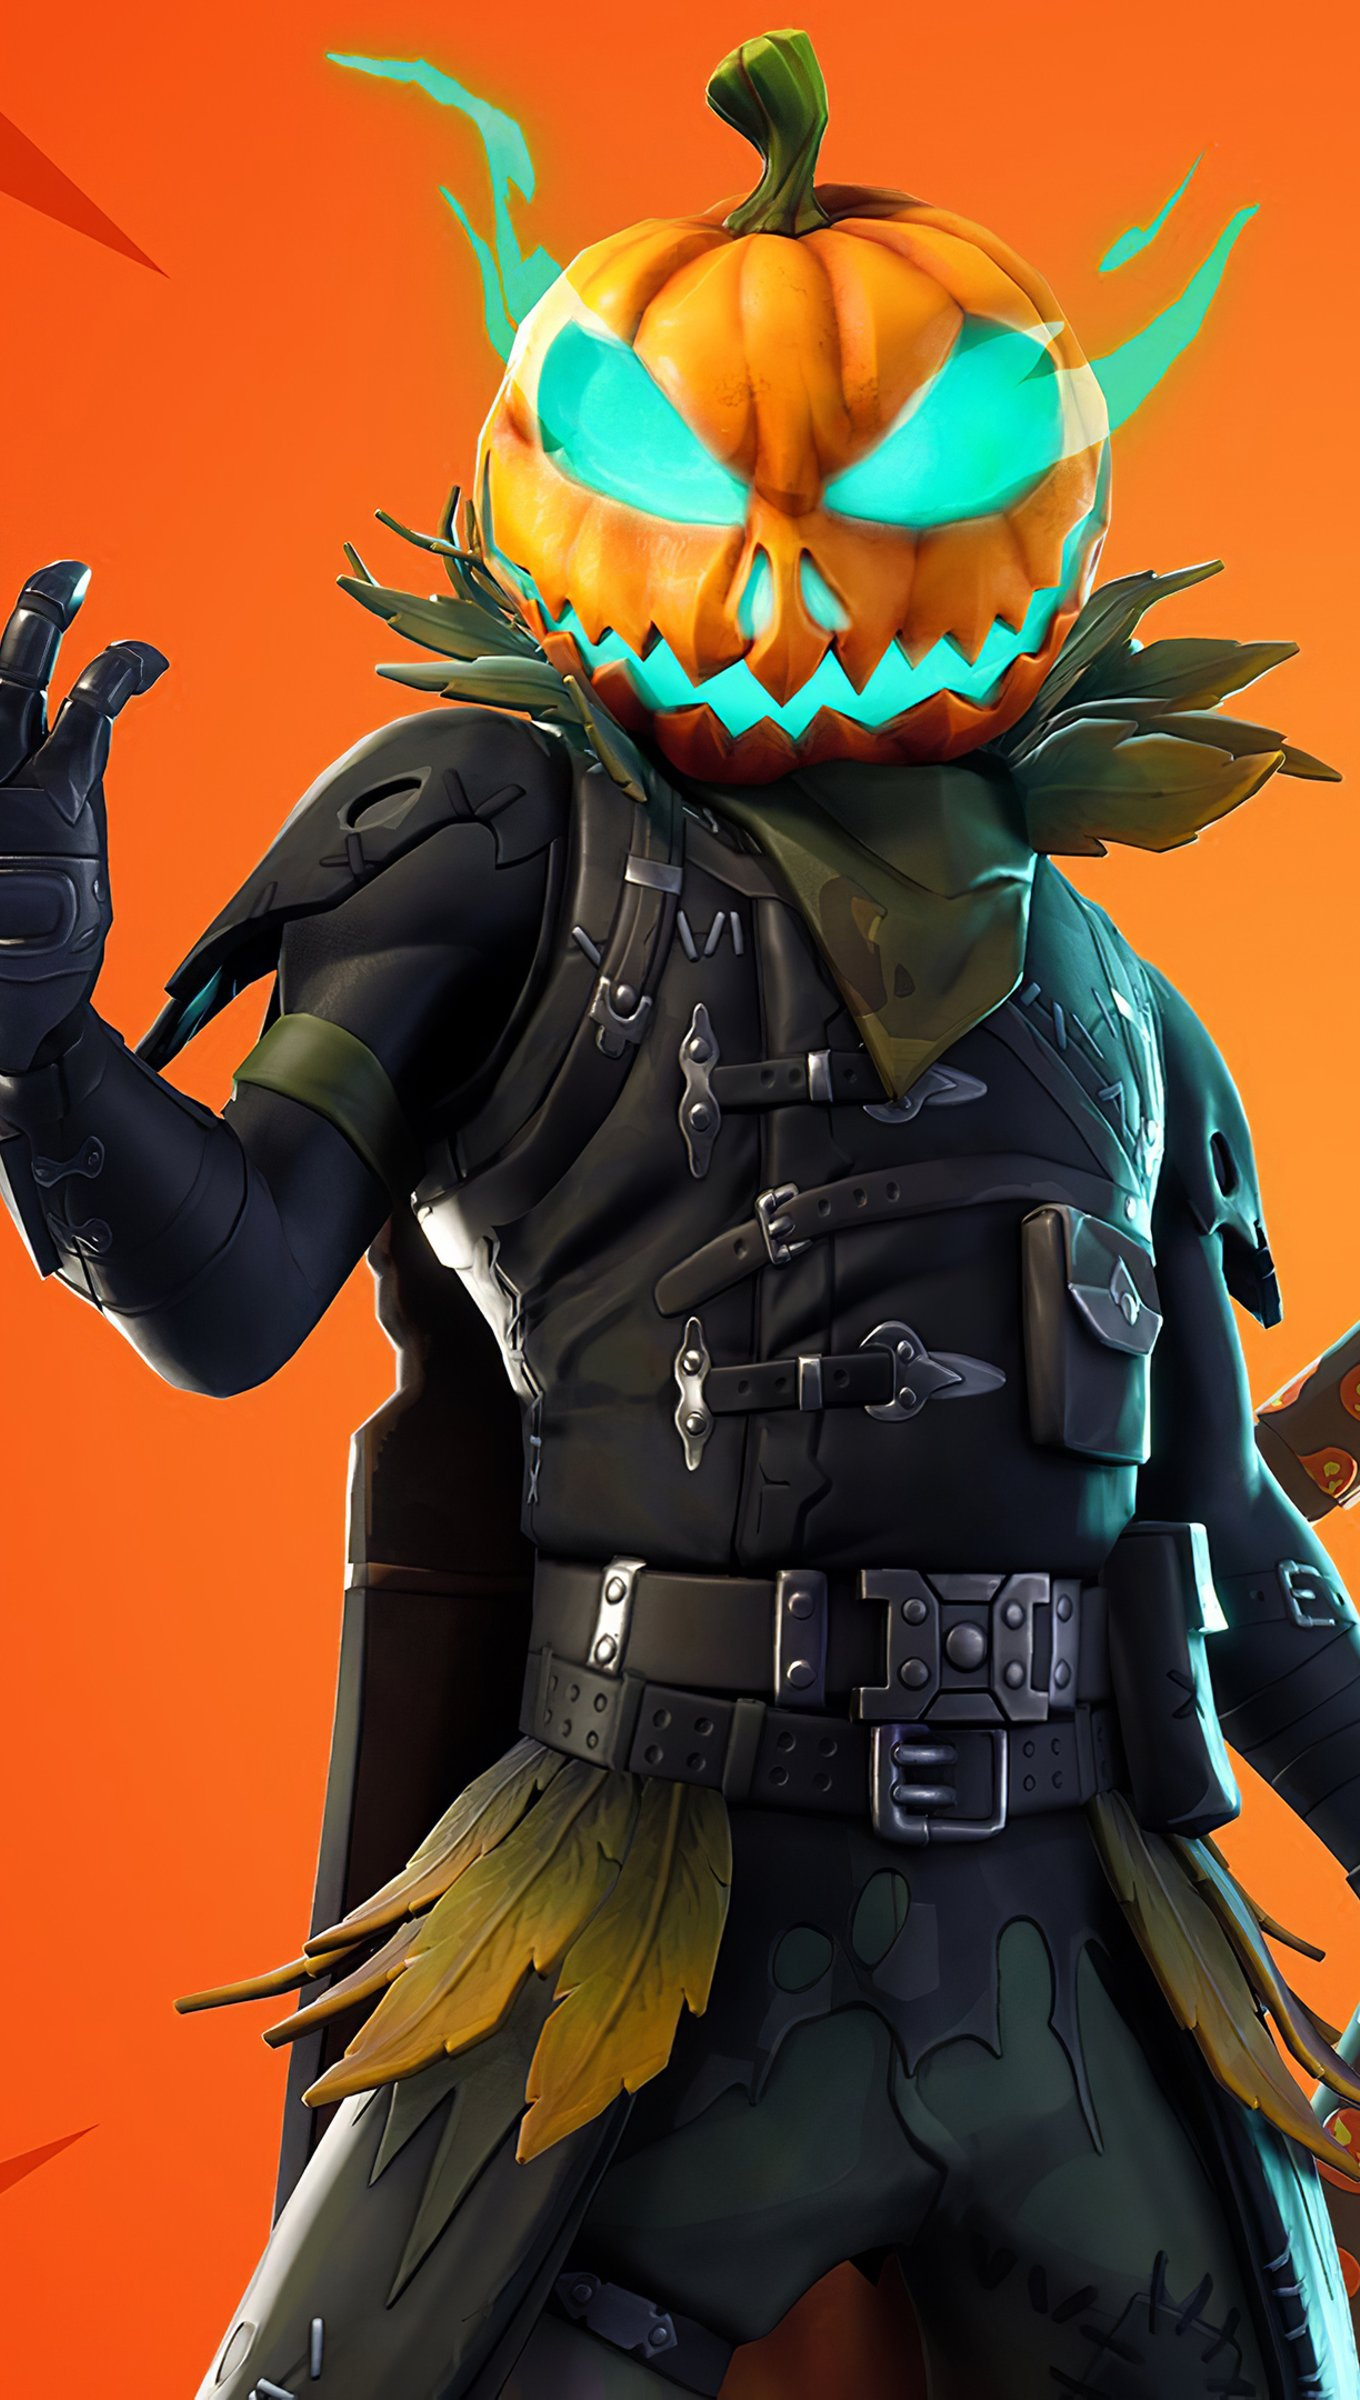 Wallpaper Halloweenhead and Jack Gourdon Fortnite Vertical